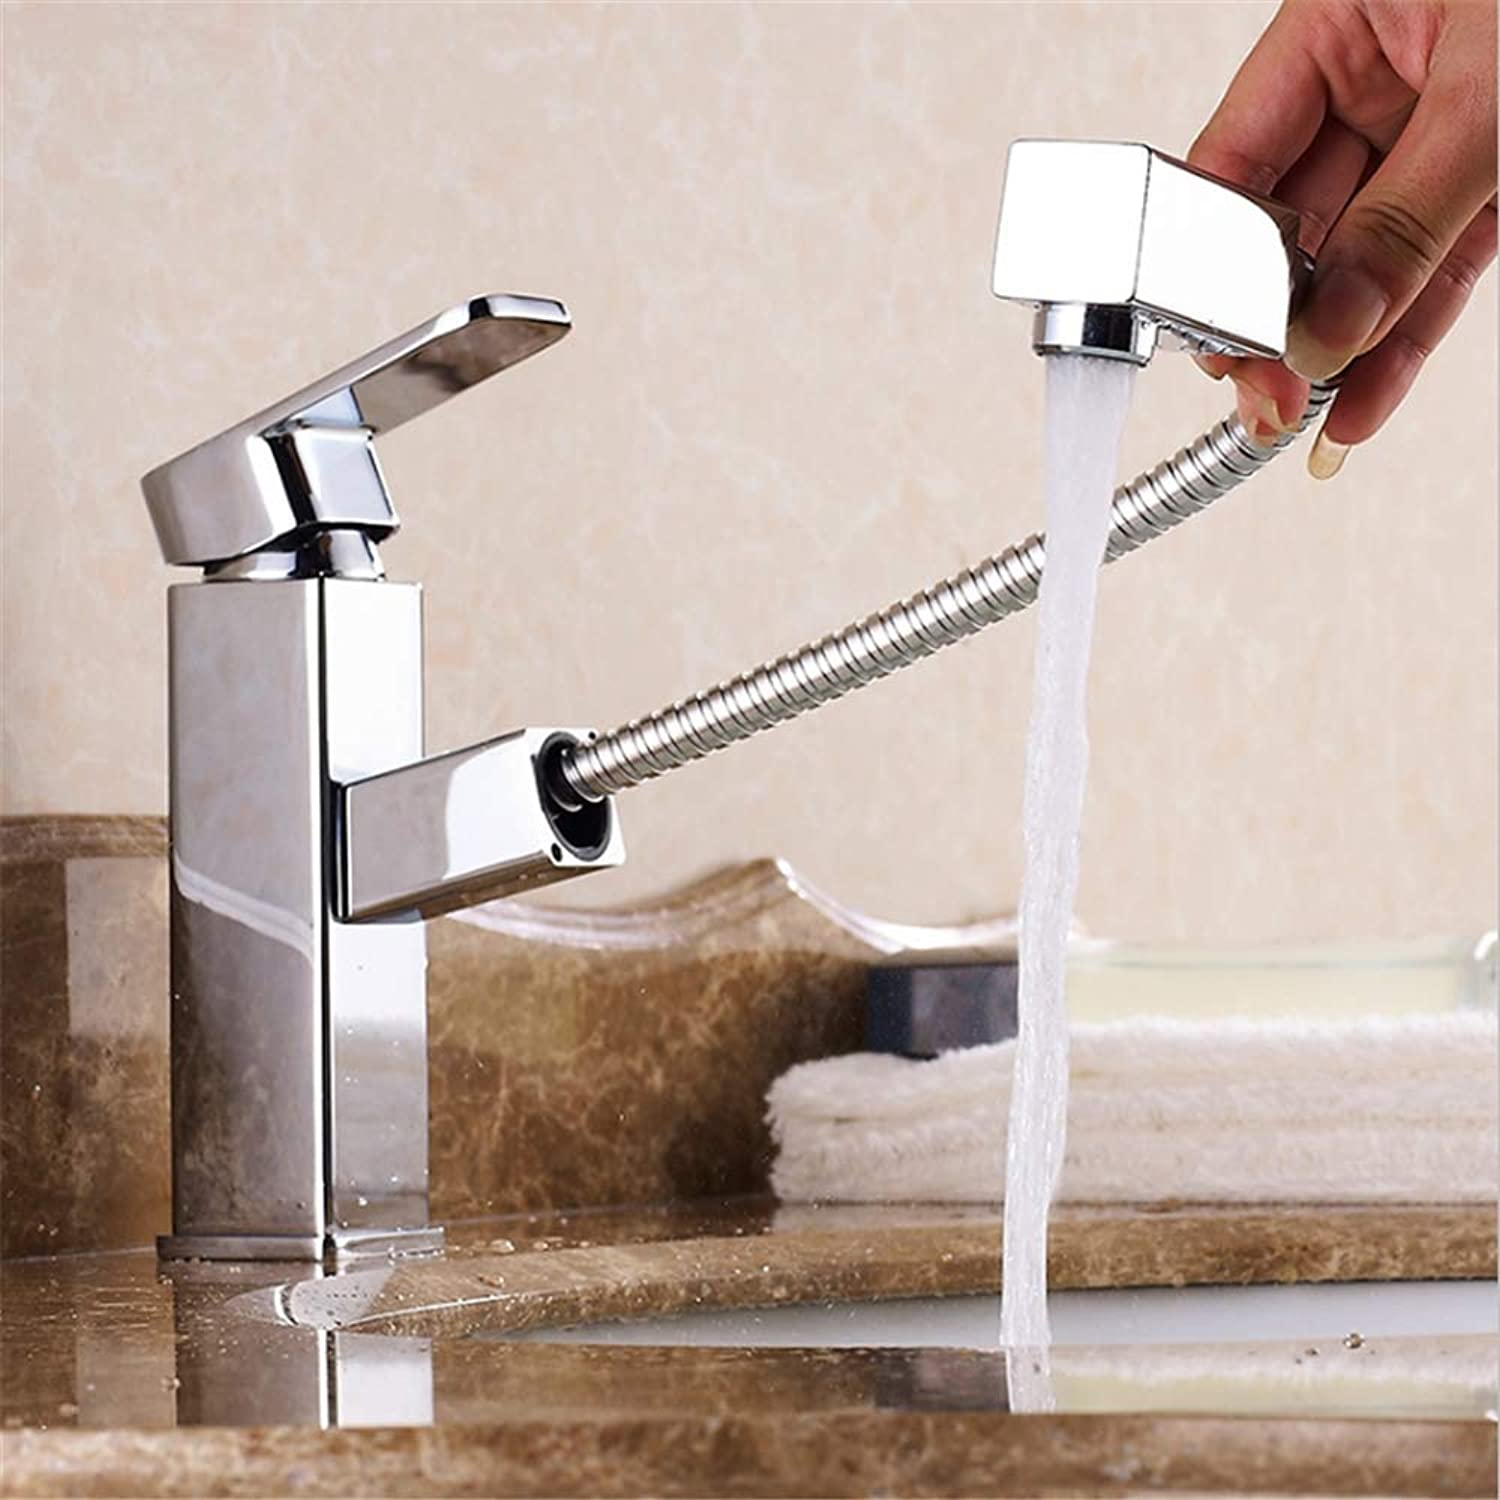 Bathroom Basin Taps Mixer, Hot And Cold Water Mixer Sink Tap, Copper Wash Basin Faucet